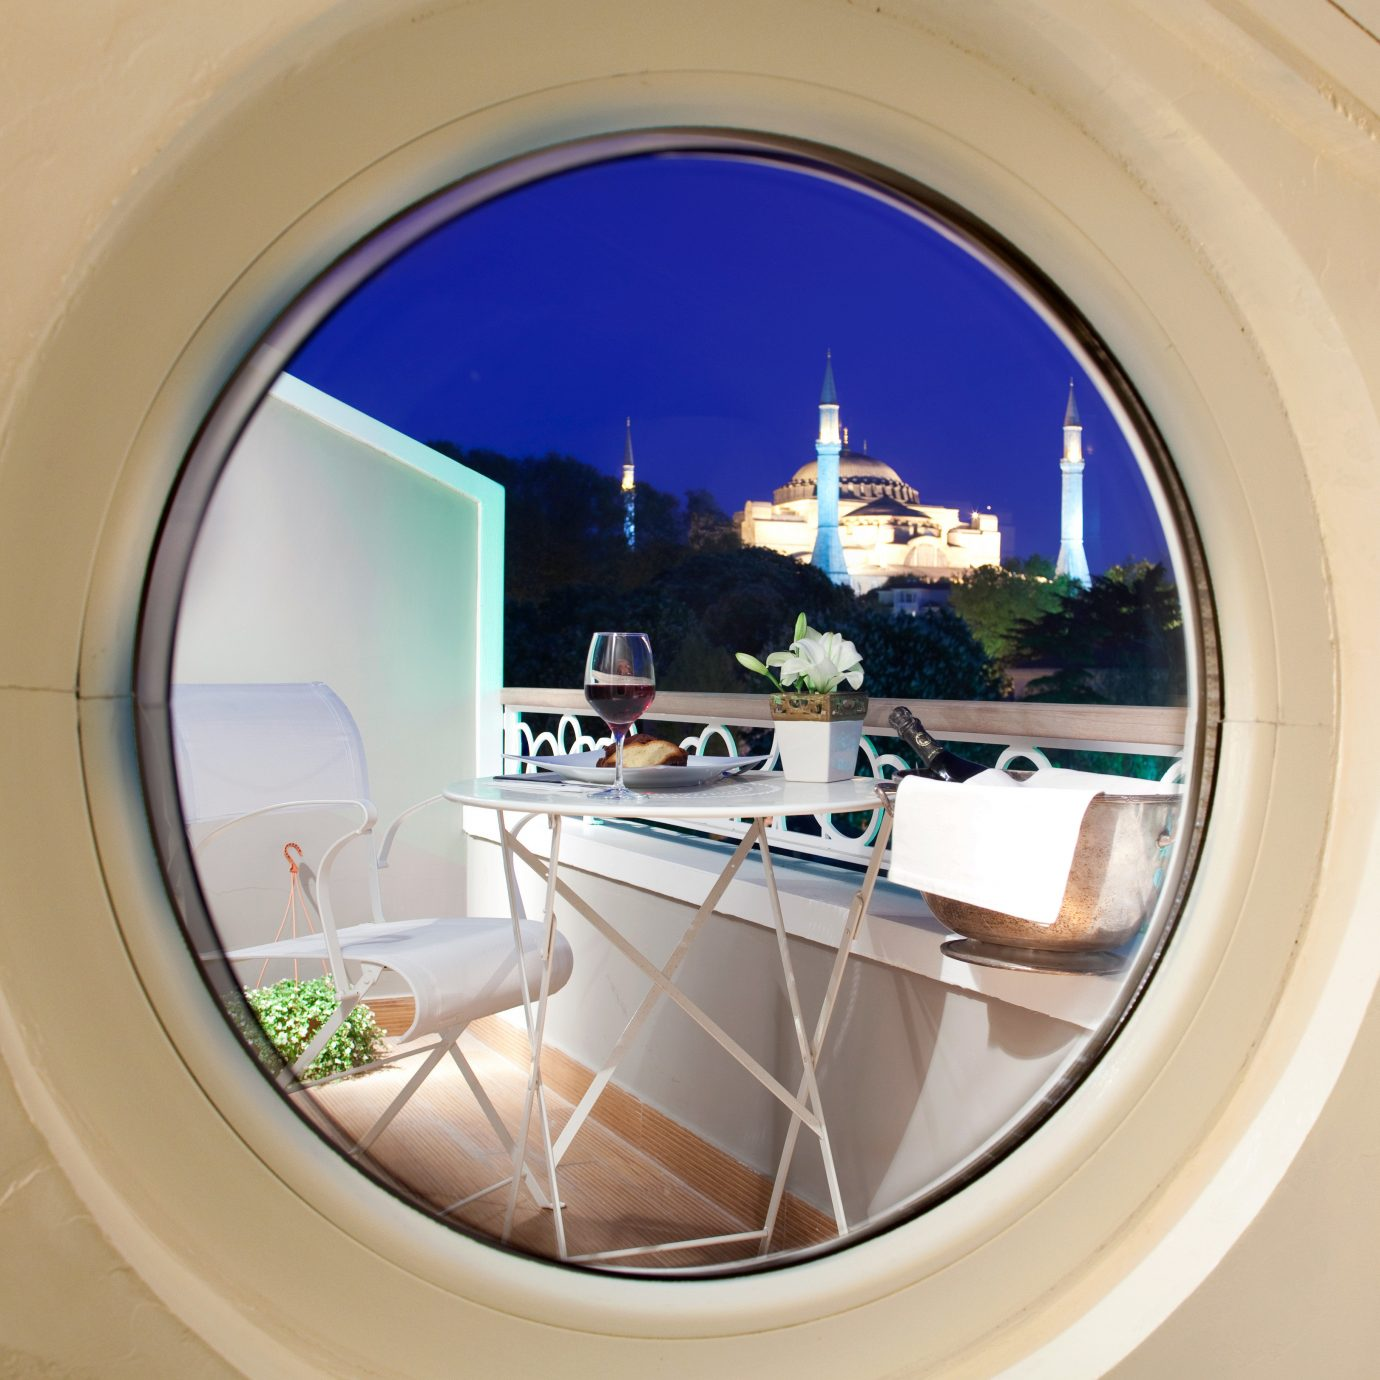 Adventure Boutique City Deck Grounds Hip Modern Nightlife Romance Romantic Scenic views mirror bathroom property porthole home arch white goods round tiled tile Bath